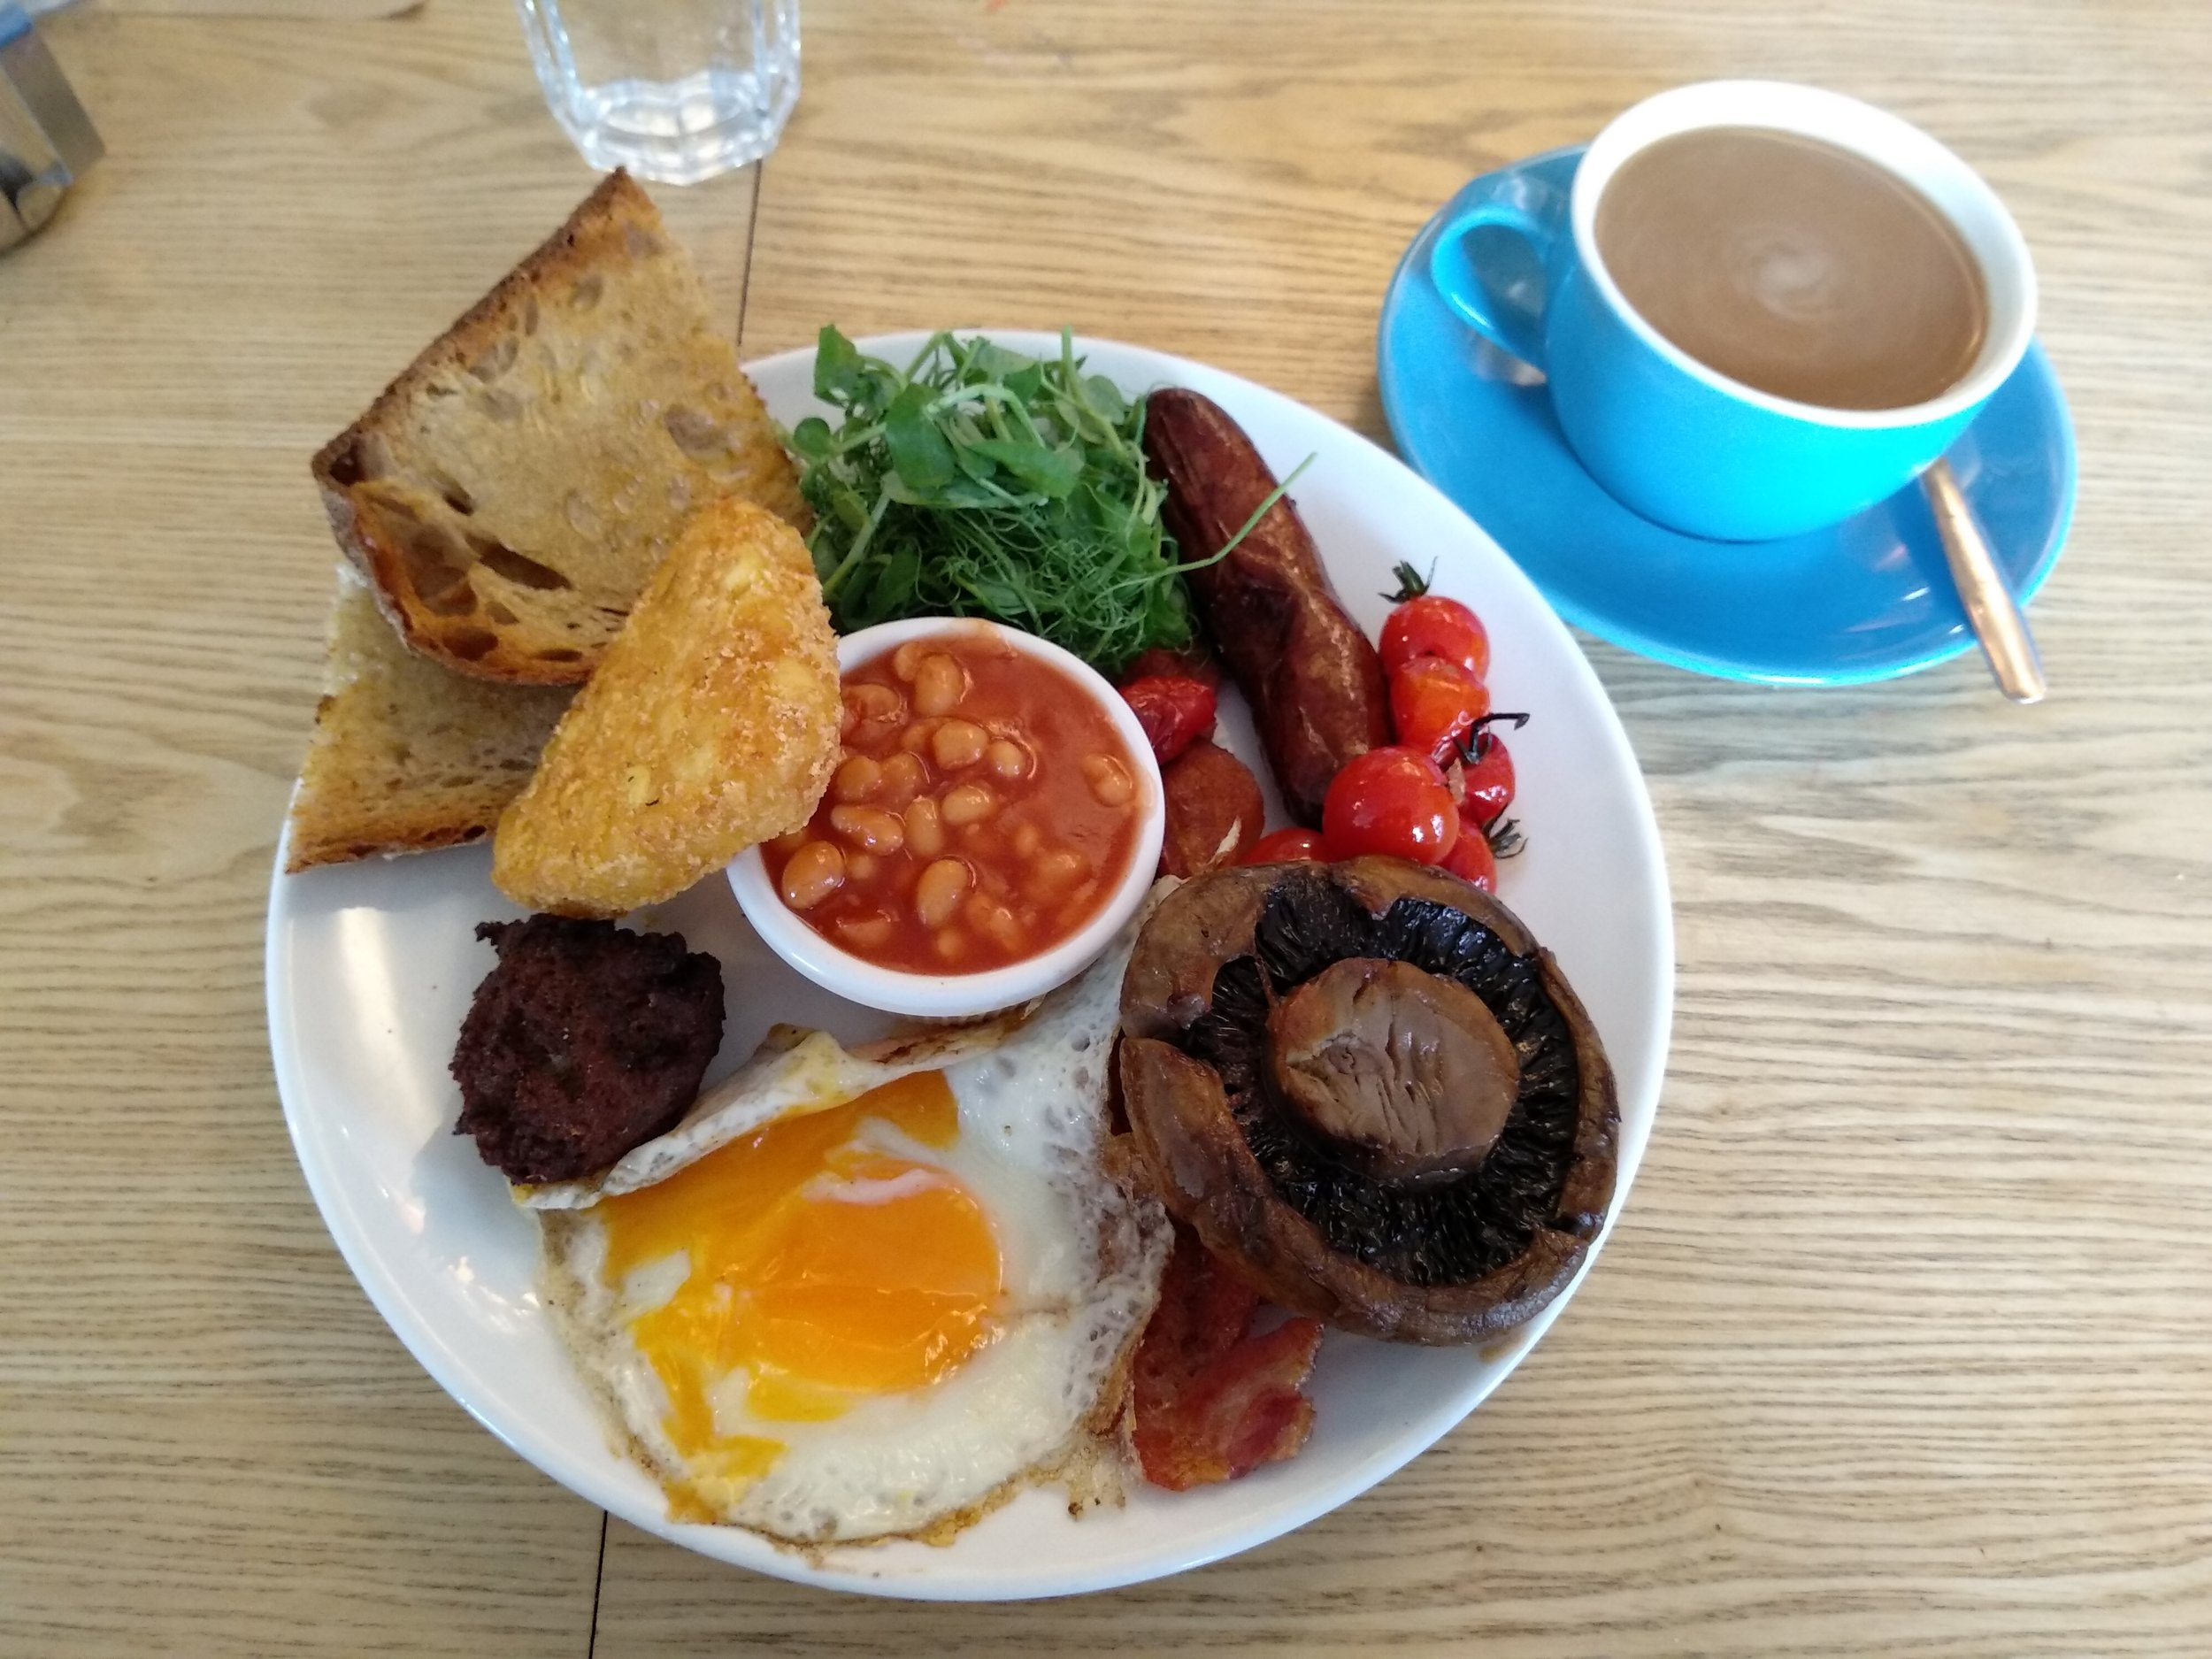 There's the full English, and then there's this. As someone who likes to mix and match different bits during a meal, the amount of possible combinations here was very stressful.